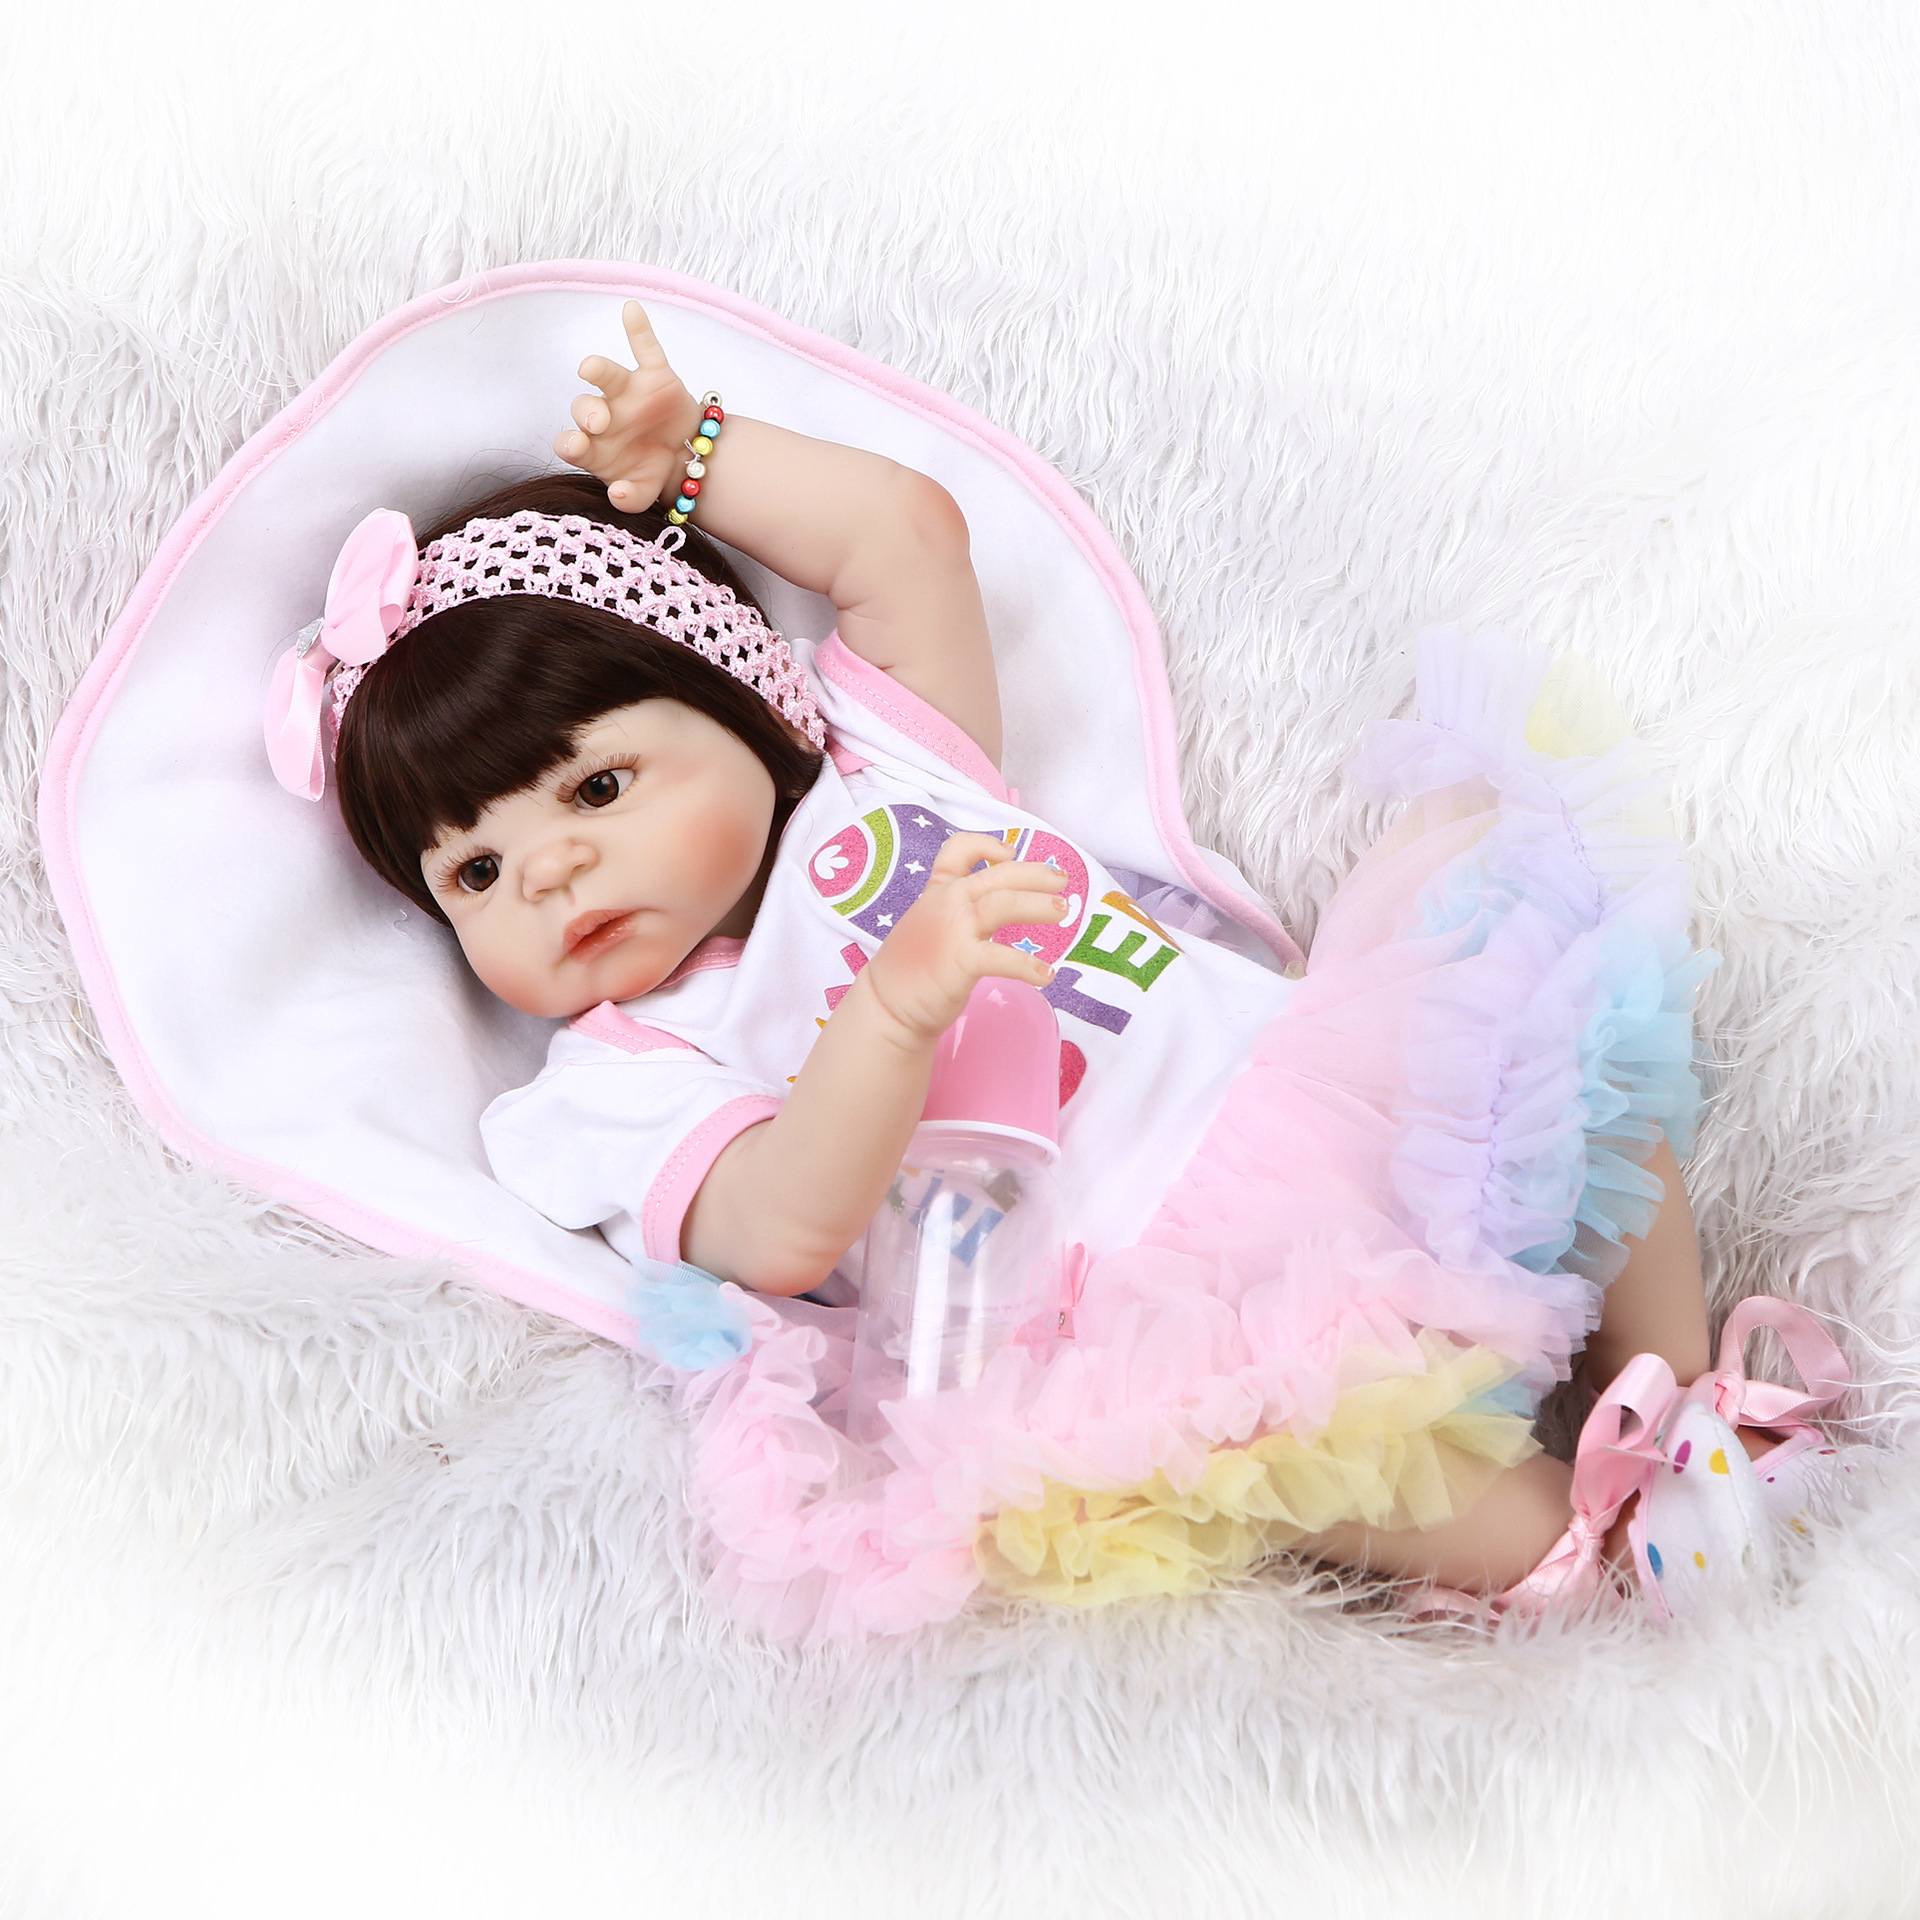 56cm Soft Silica gel Doll Reborn Baby Appease Doll Lifelike Babies play play house toy for Children's Christmas Birthday Gift soft silica gel doll 57cm reborn baby appease doll lifelike babies play play house toy for children s christmas birthday gift